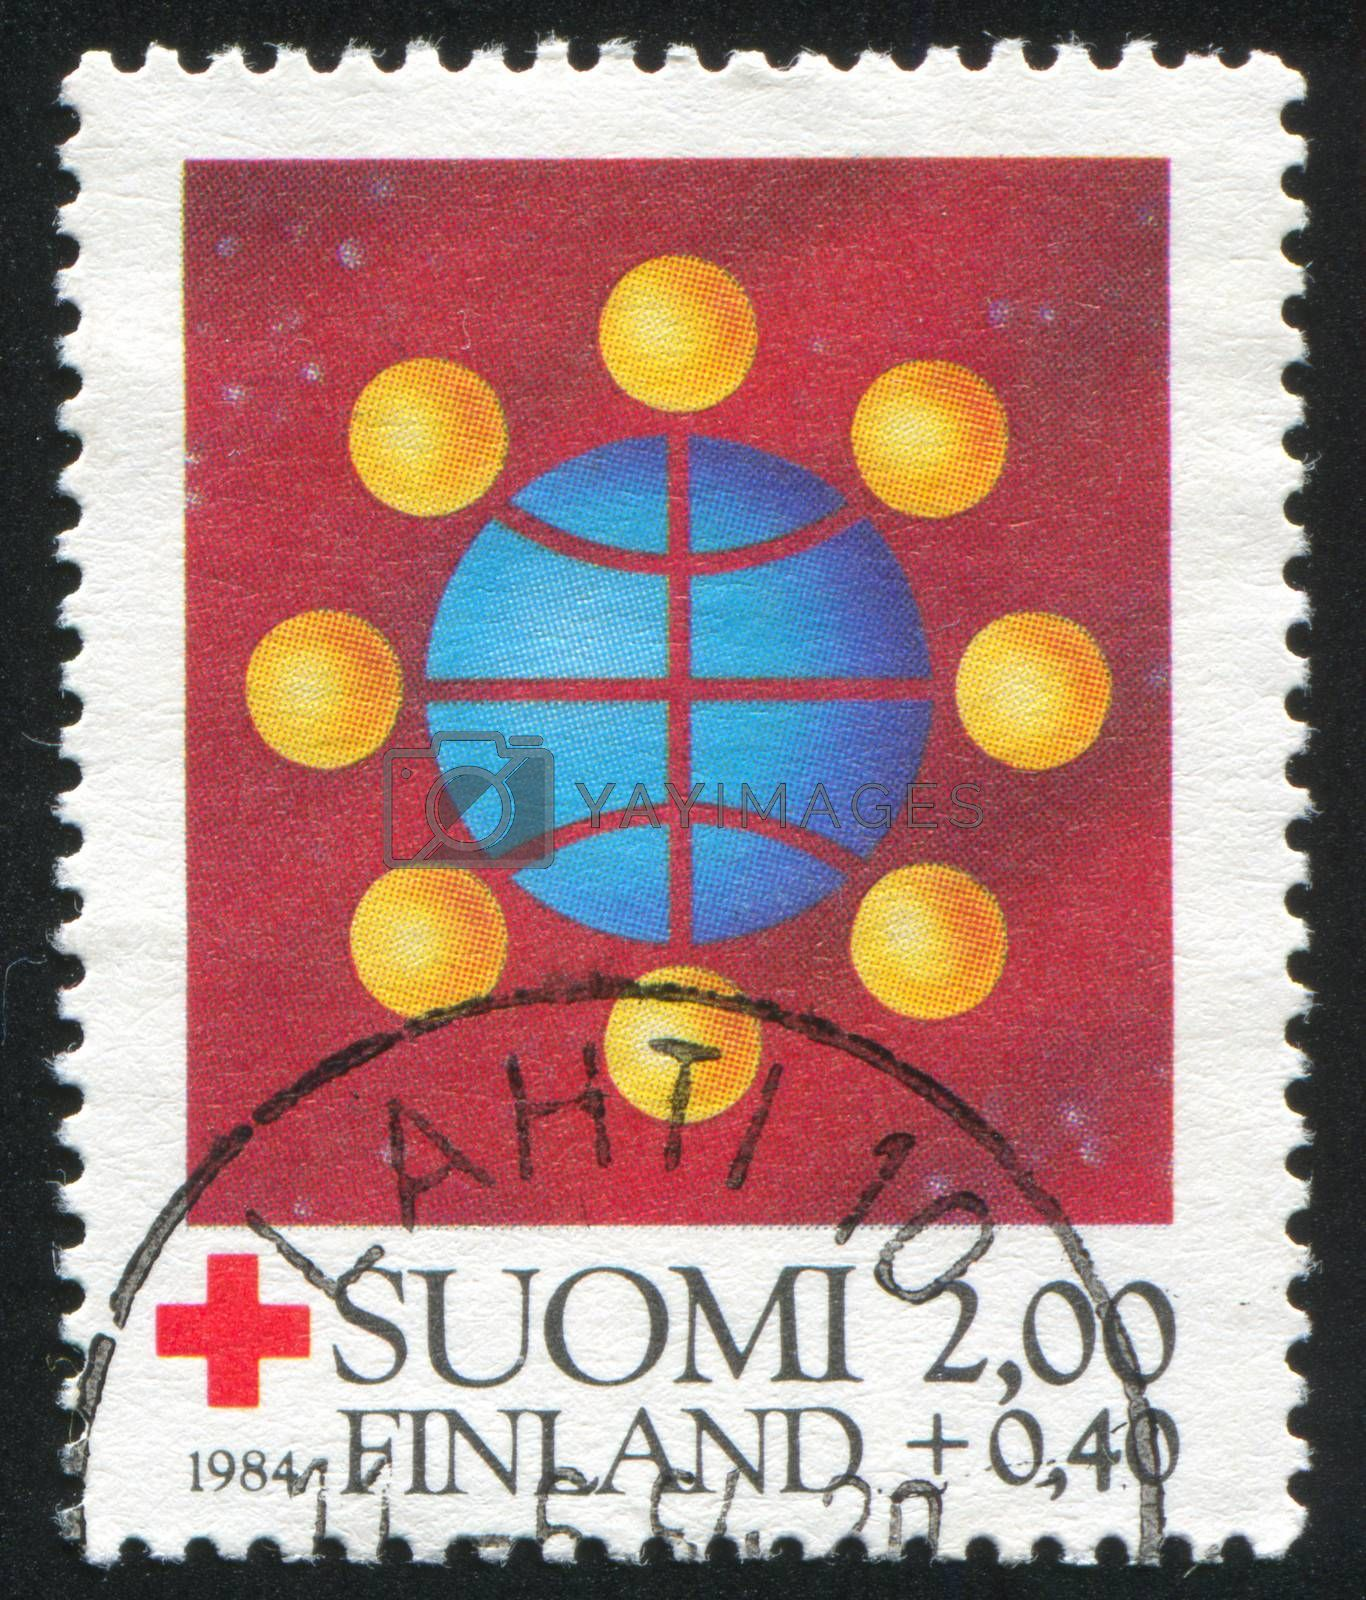 FINLAND - CIRCA 1984: stamp printed by Finland, shows Symbolic world communication, circa 1984